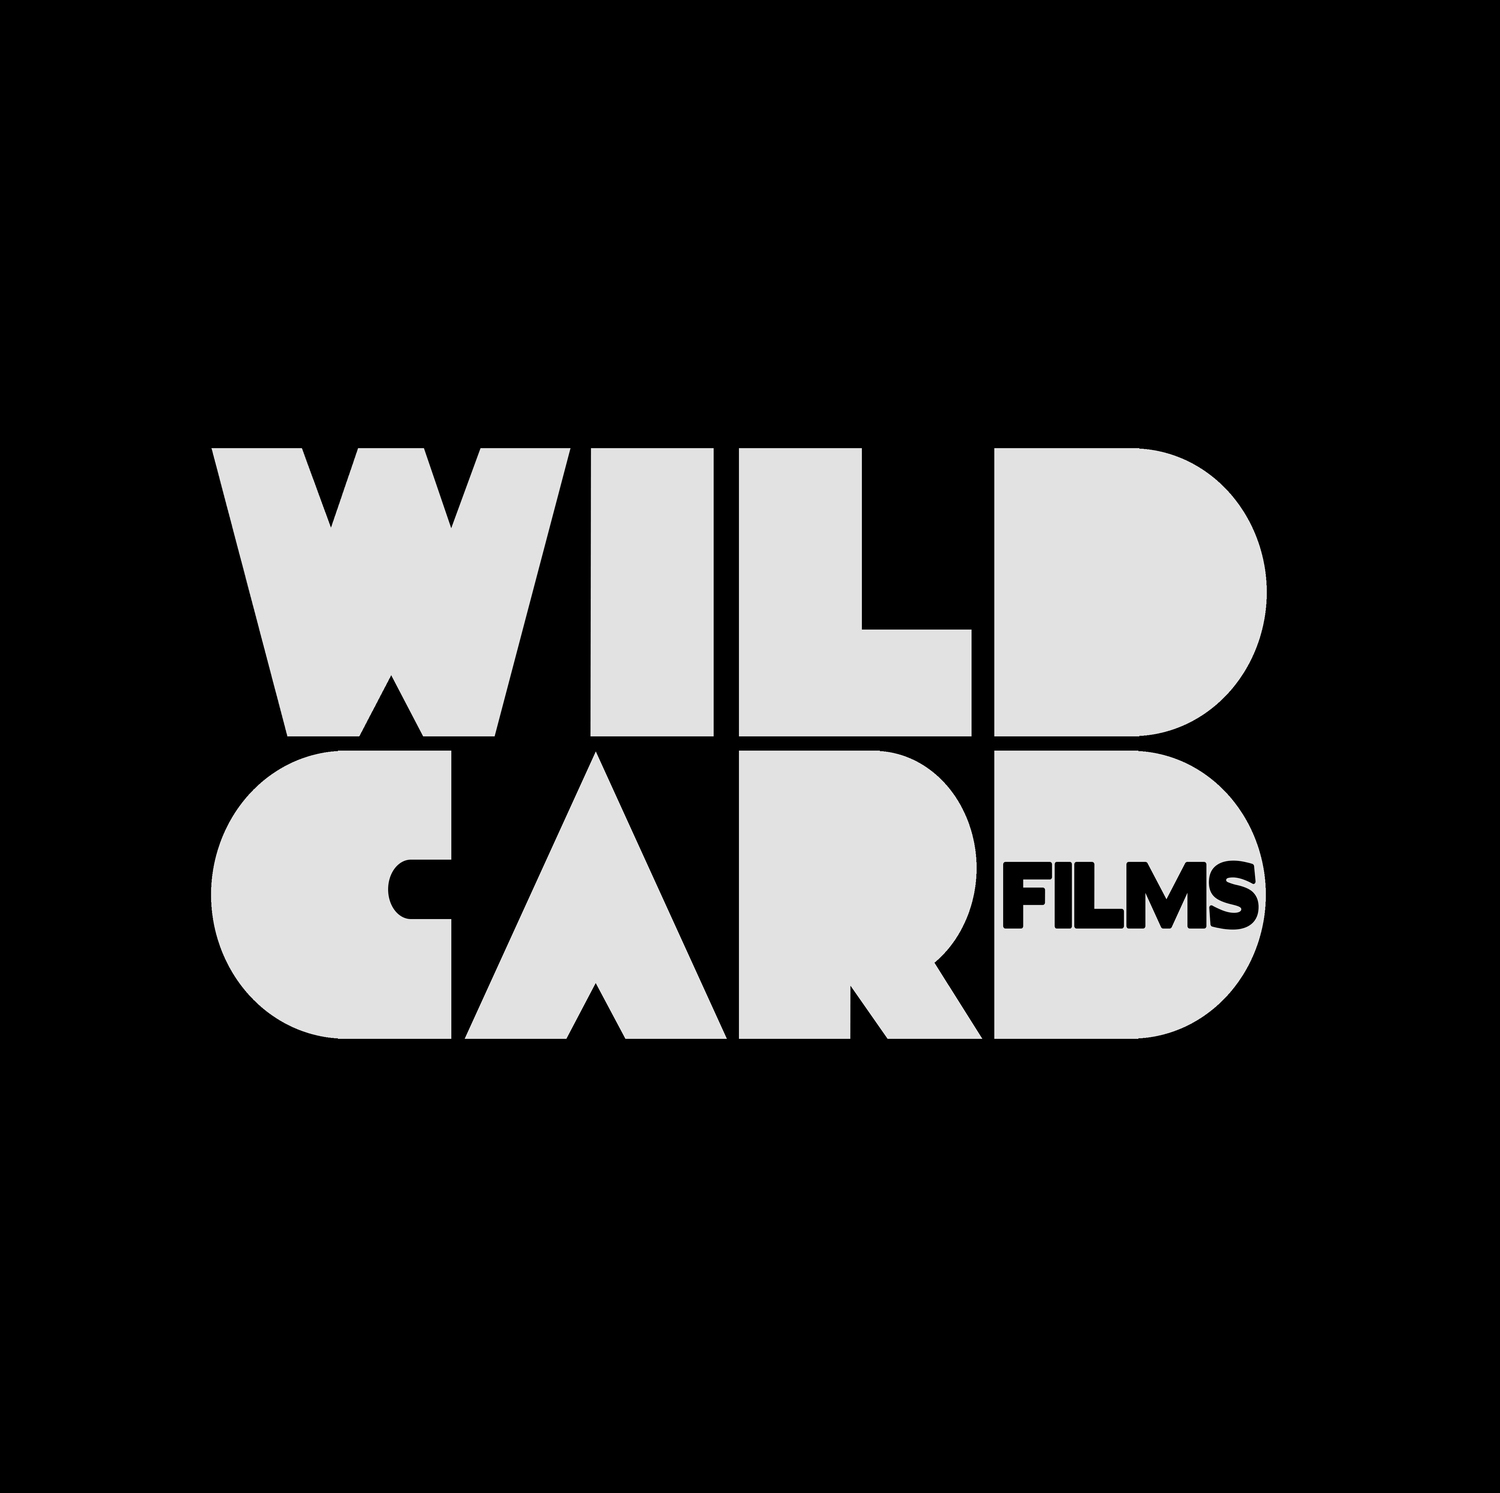 WILDCARD FILMS